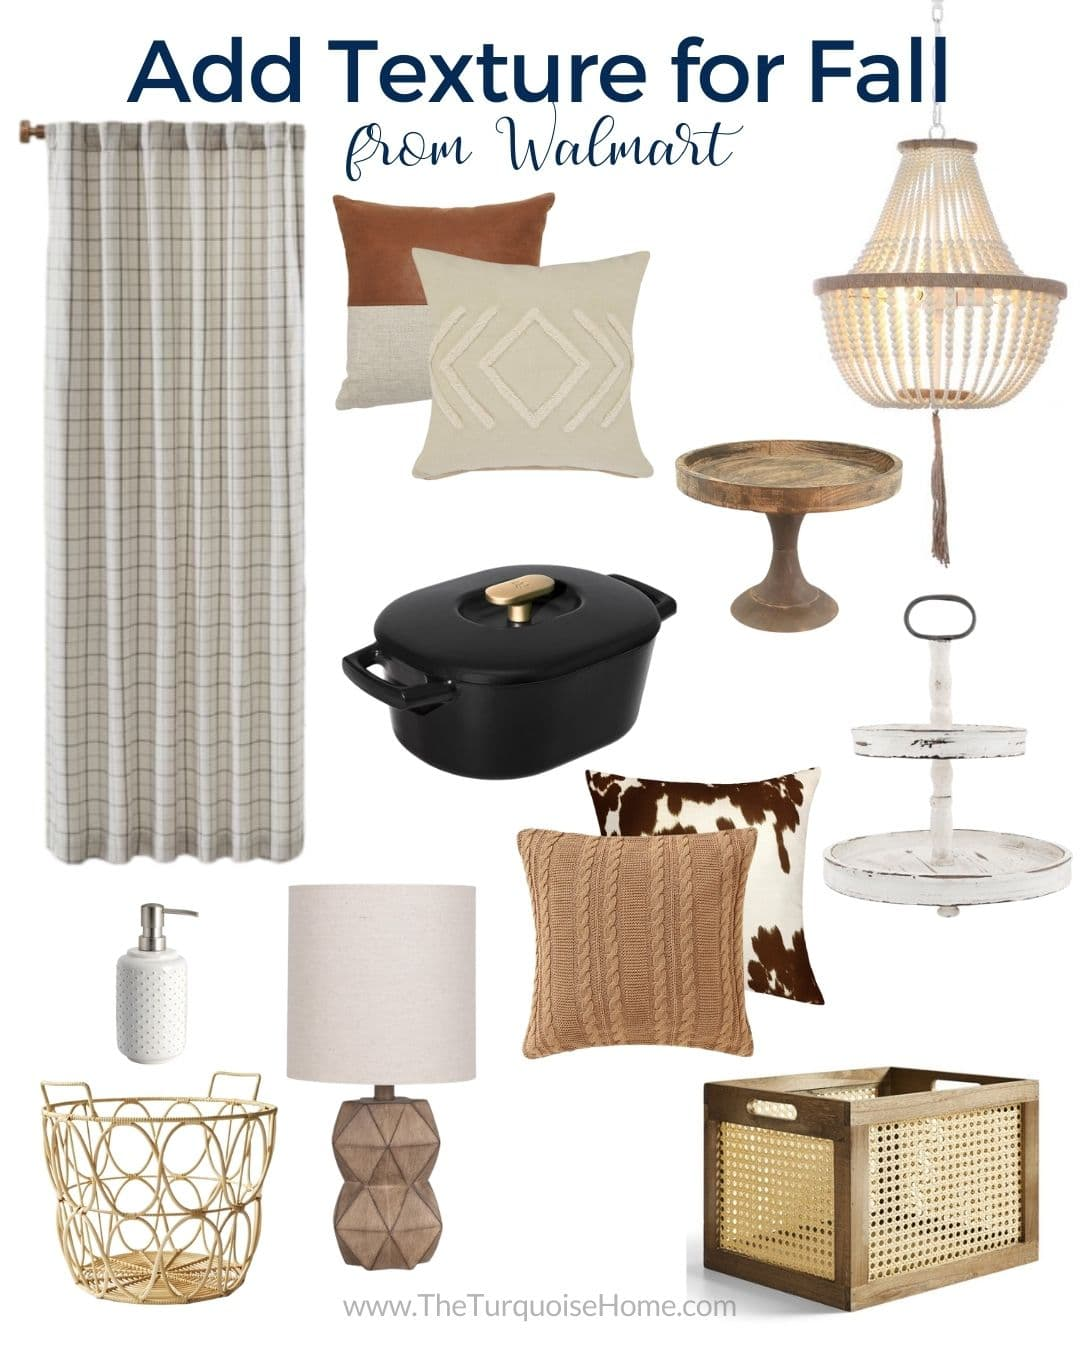 Cozy Fall Texture from Walmart Home